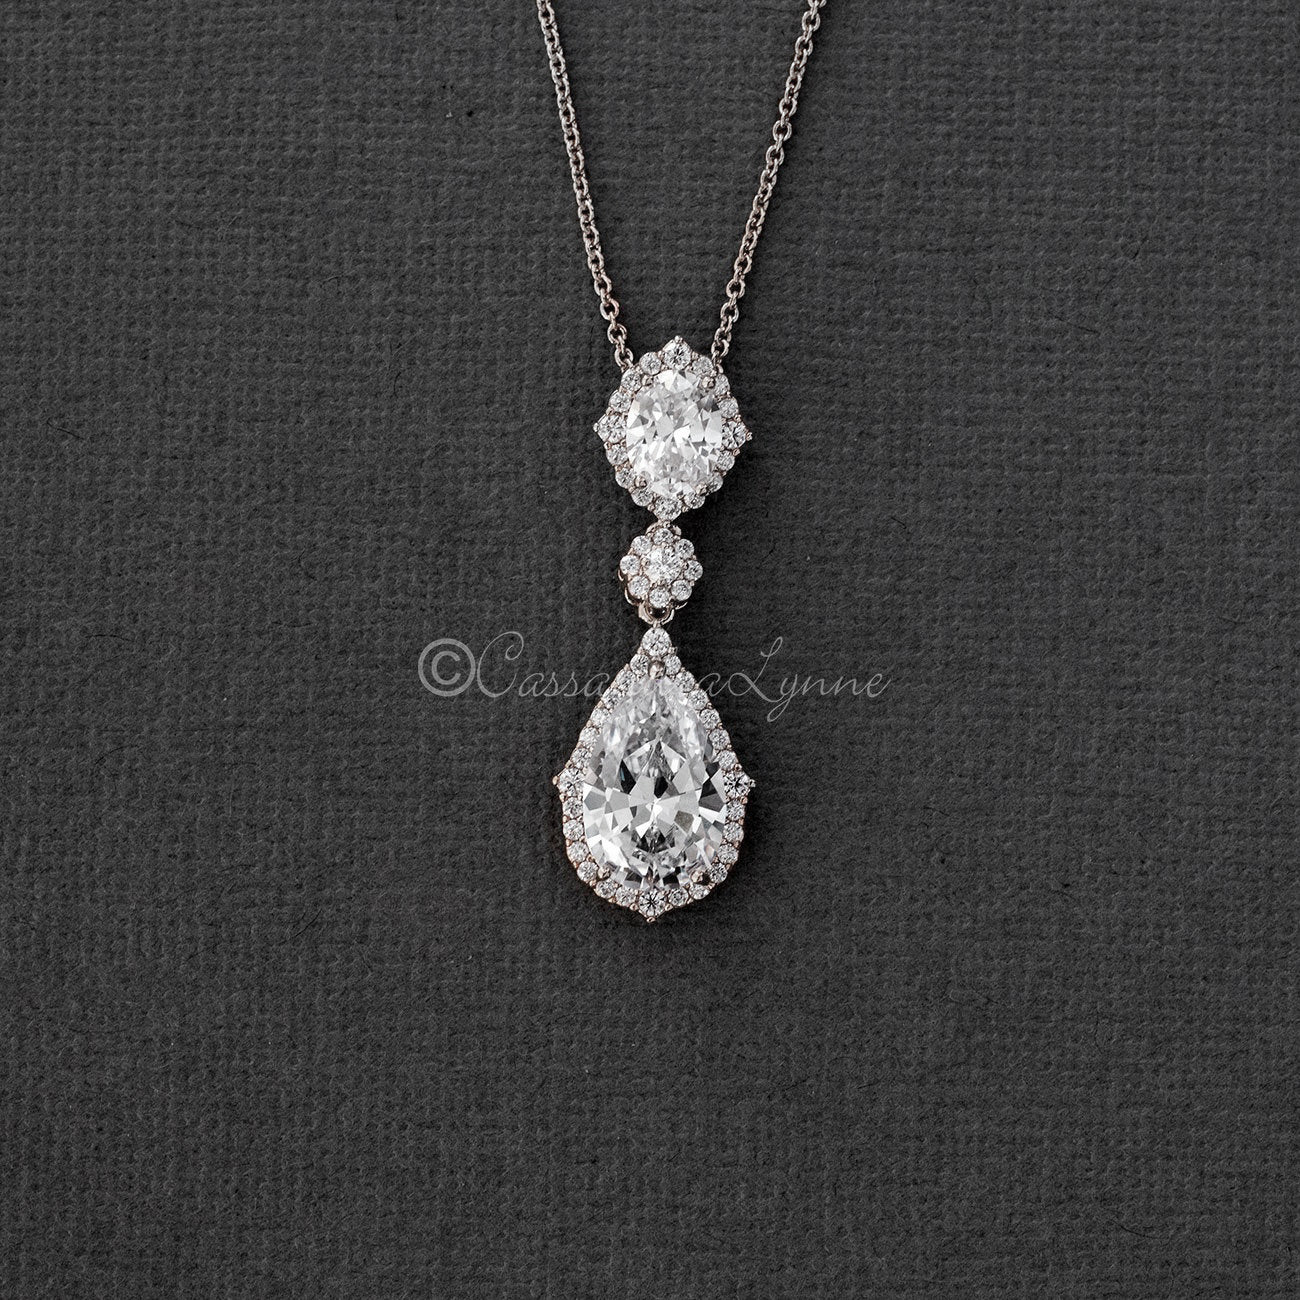 Vintage Bridal Pendant in a Pave Setting